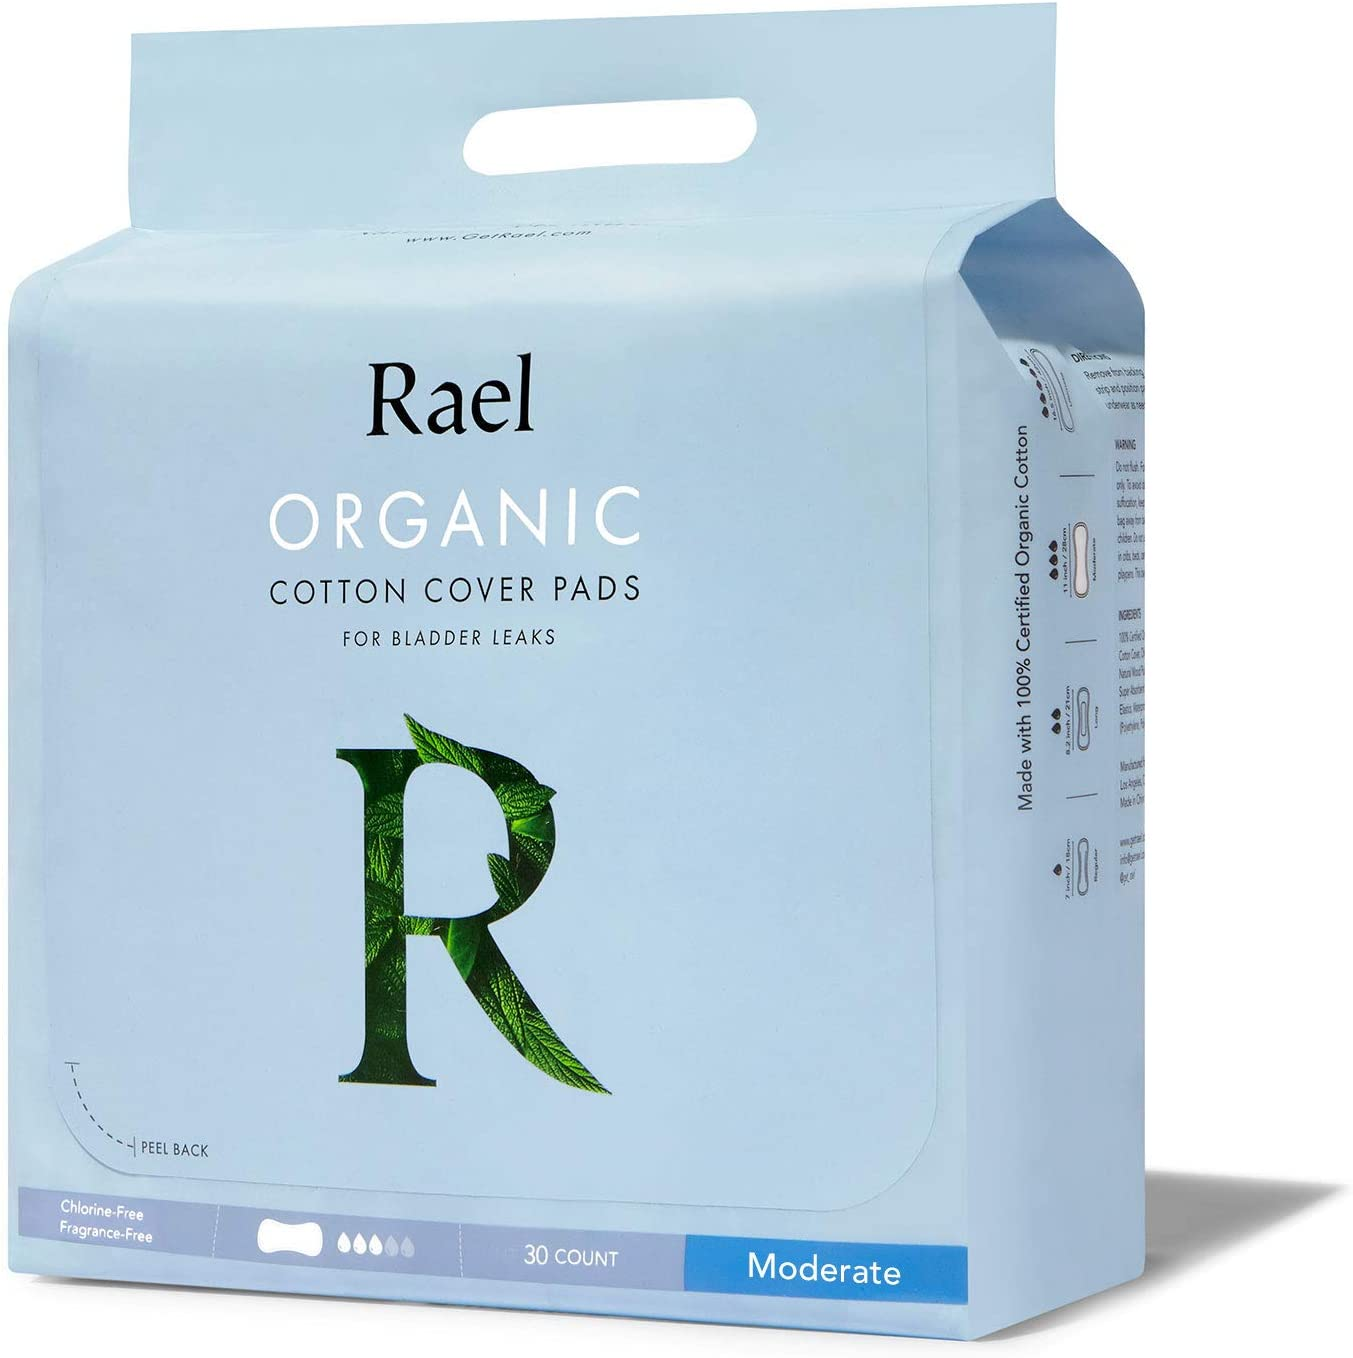 Rael Organic Incontinence Pads Moderate- Organic Bladder Control and Postpartum Pads, 4-Layer Core with Leak Guard Technology, Postpartum (30 Count)